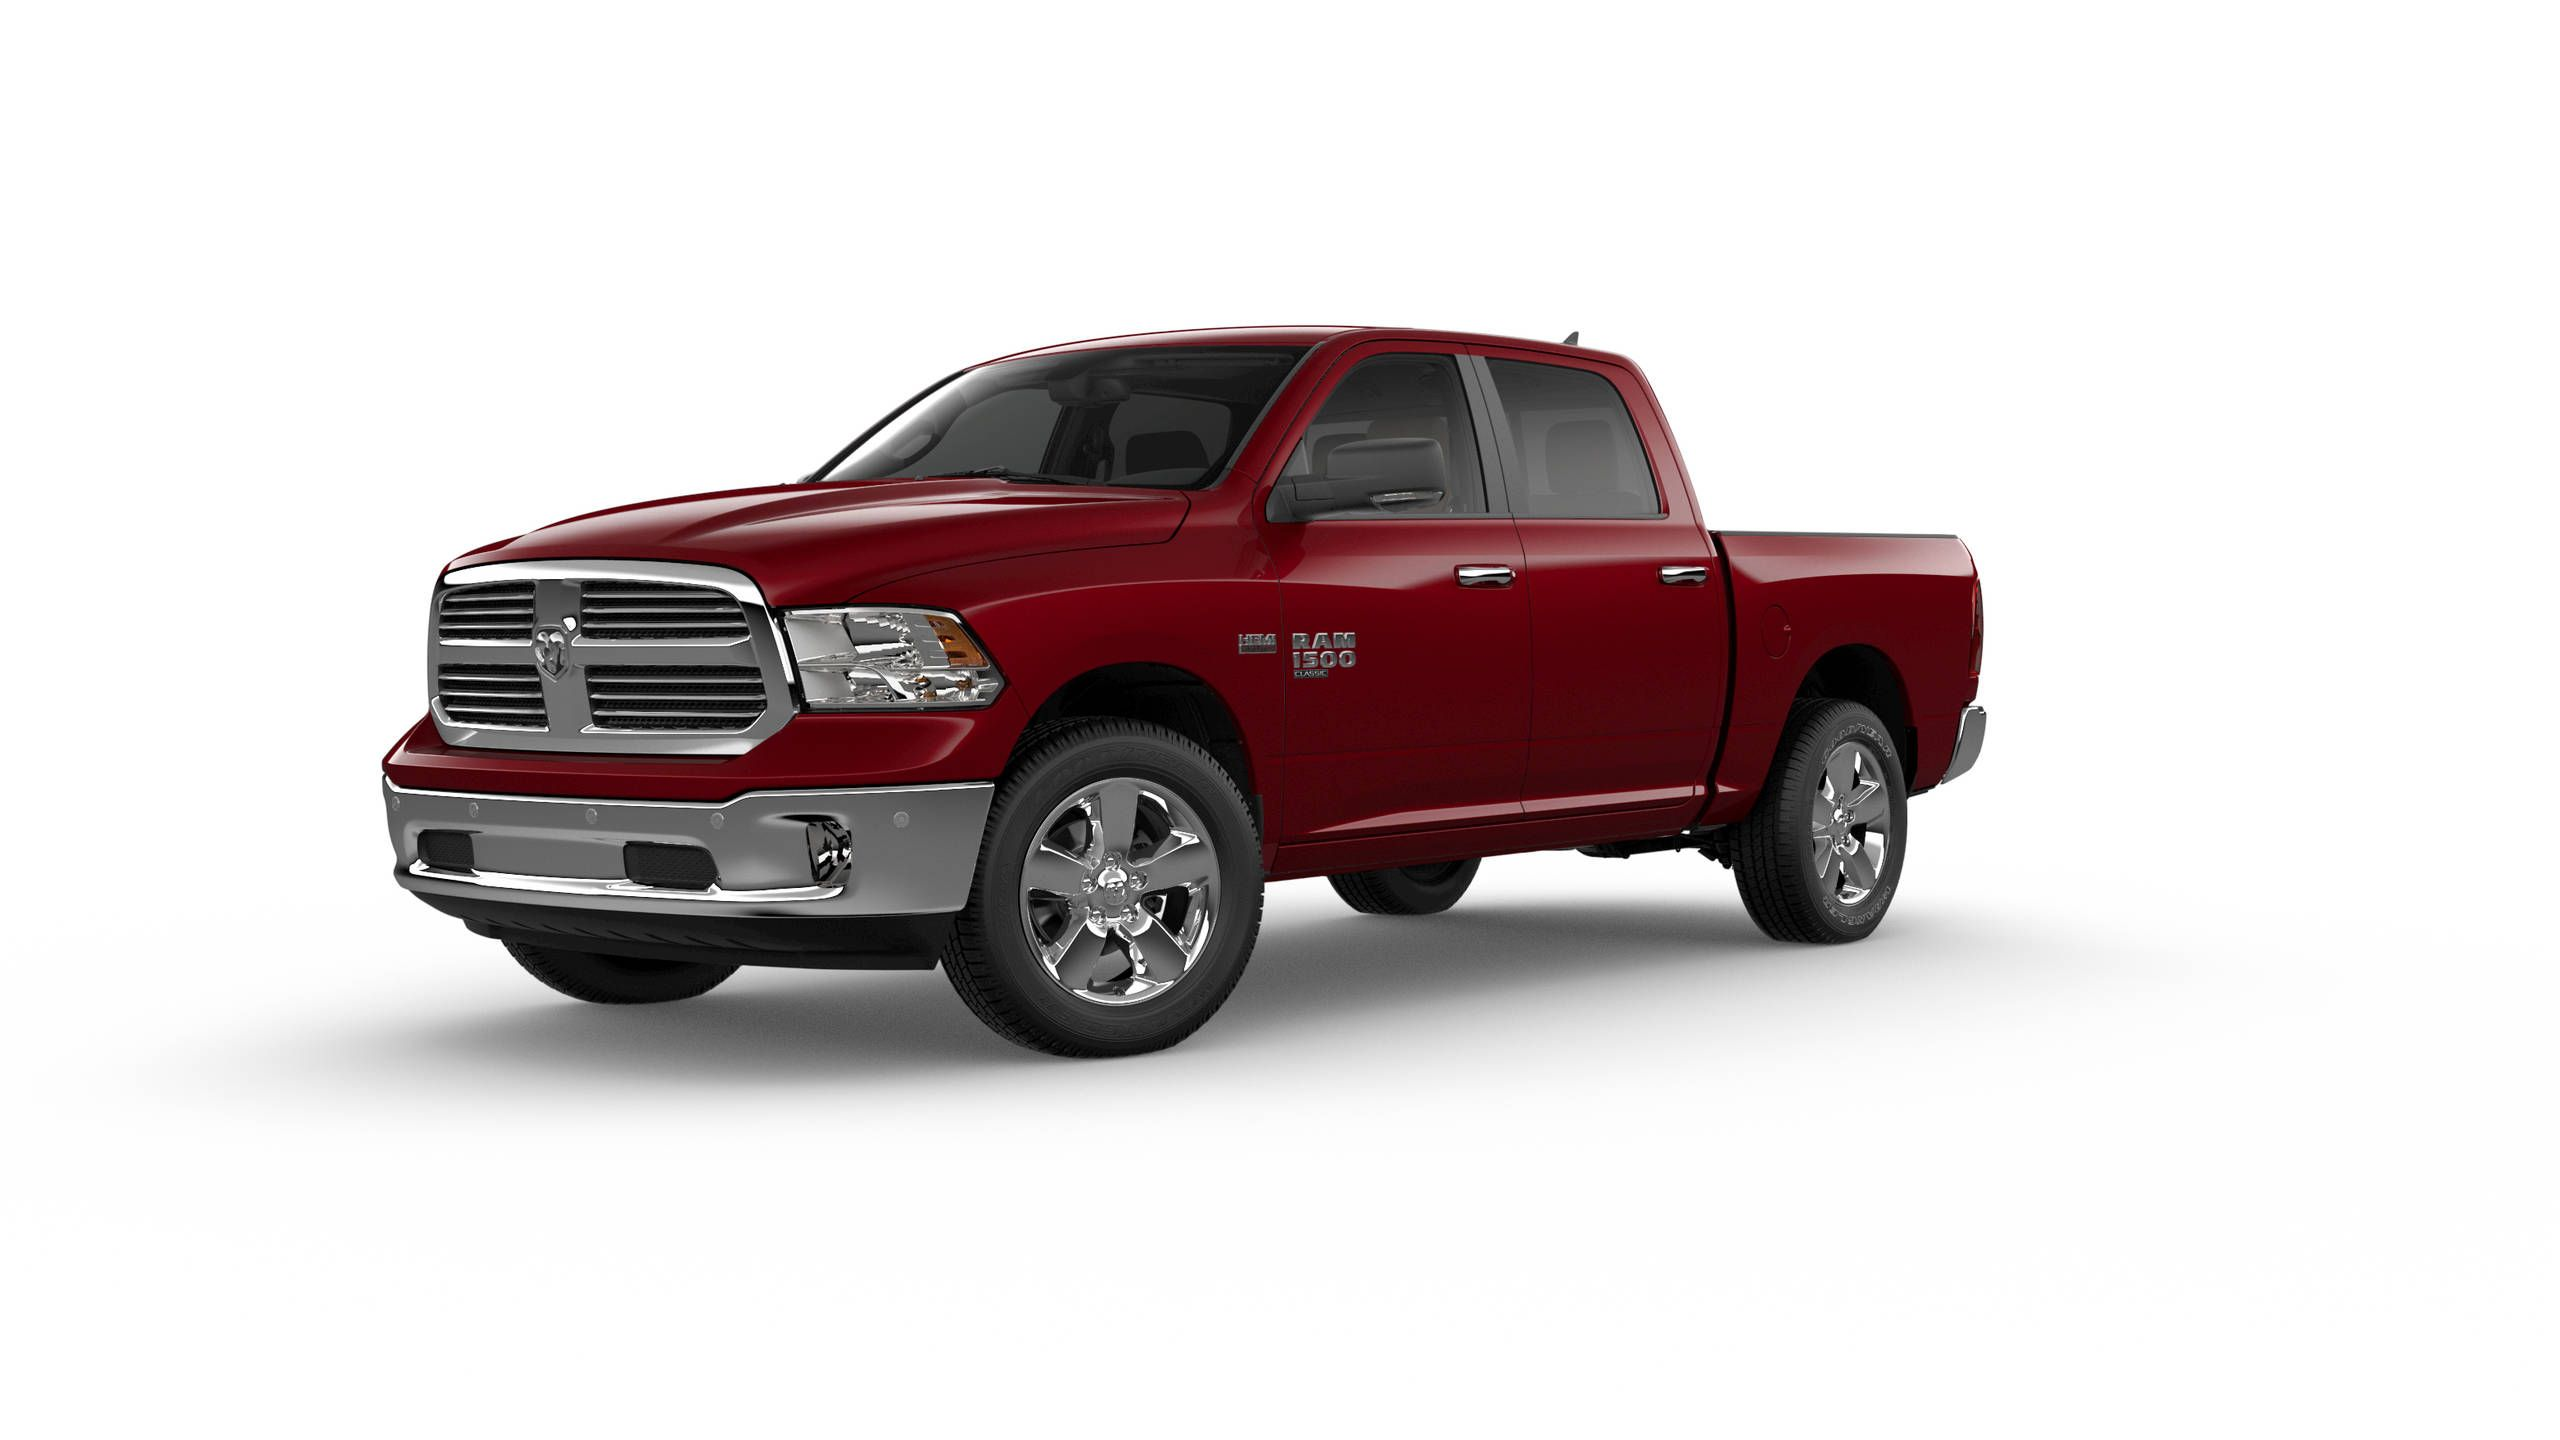 Ram 1500 Classic Will Be Offered Alongside New Ram 1500 Launched This Year